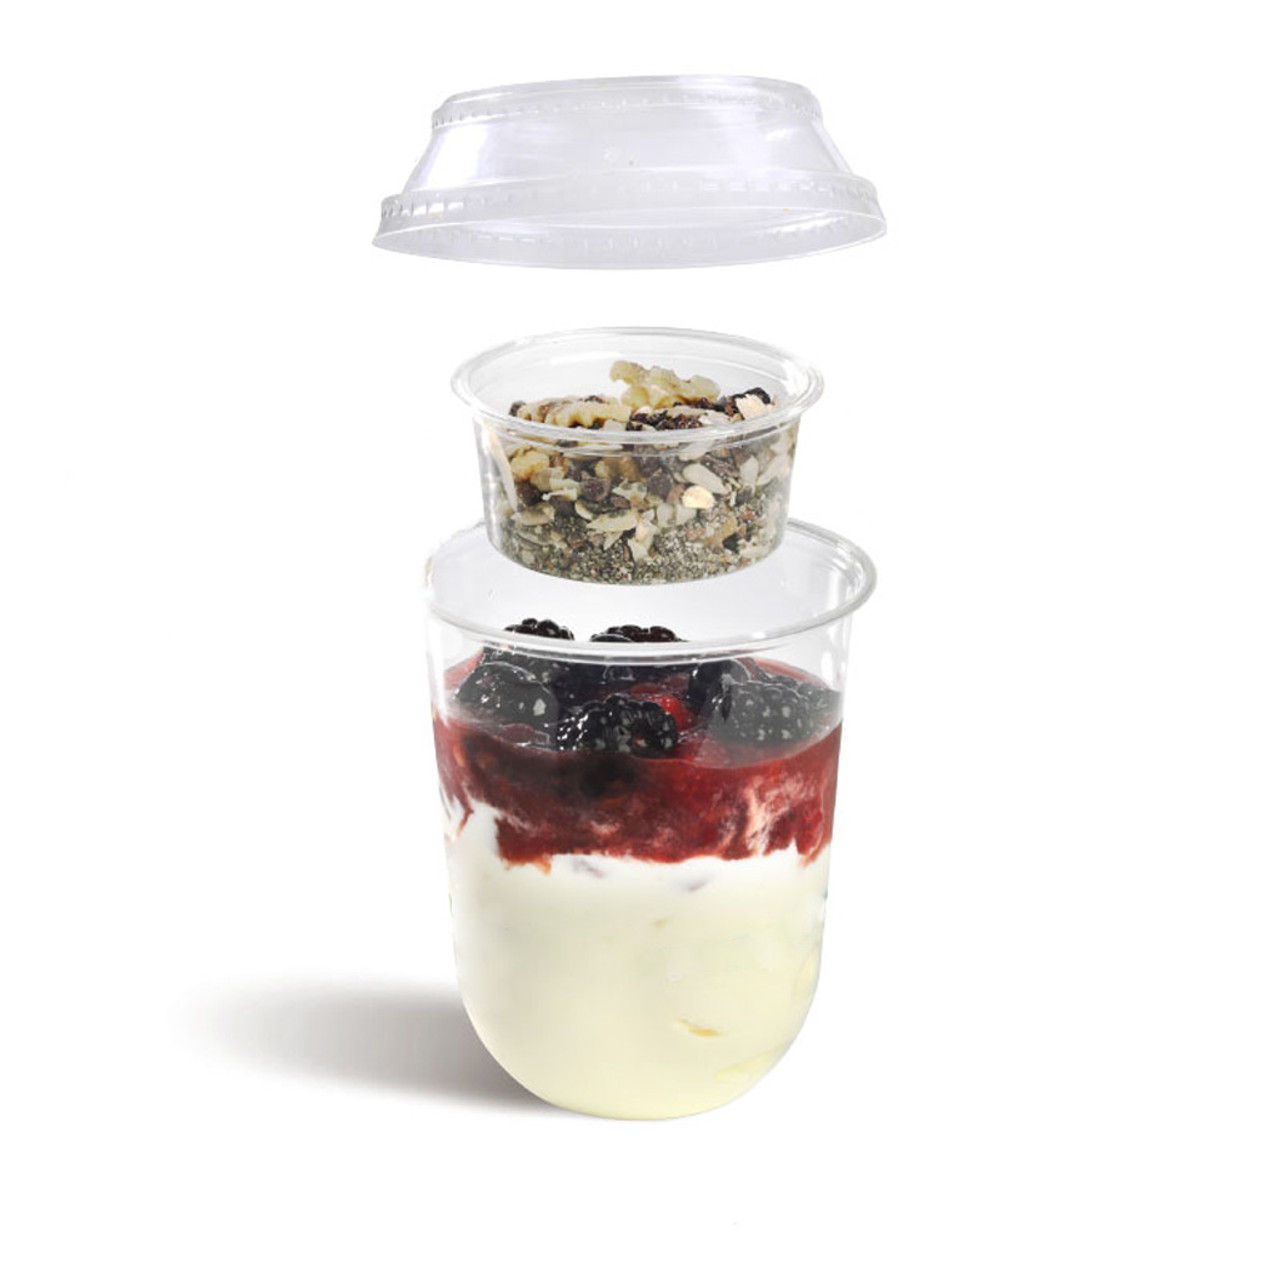 3oz compostable parfait inserts